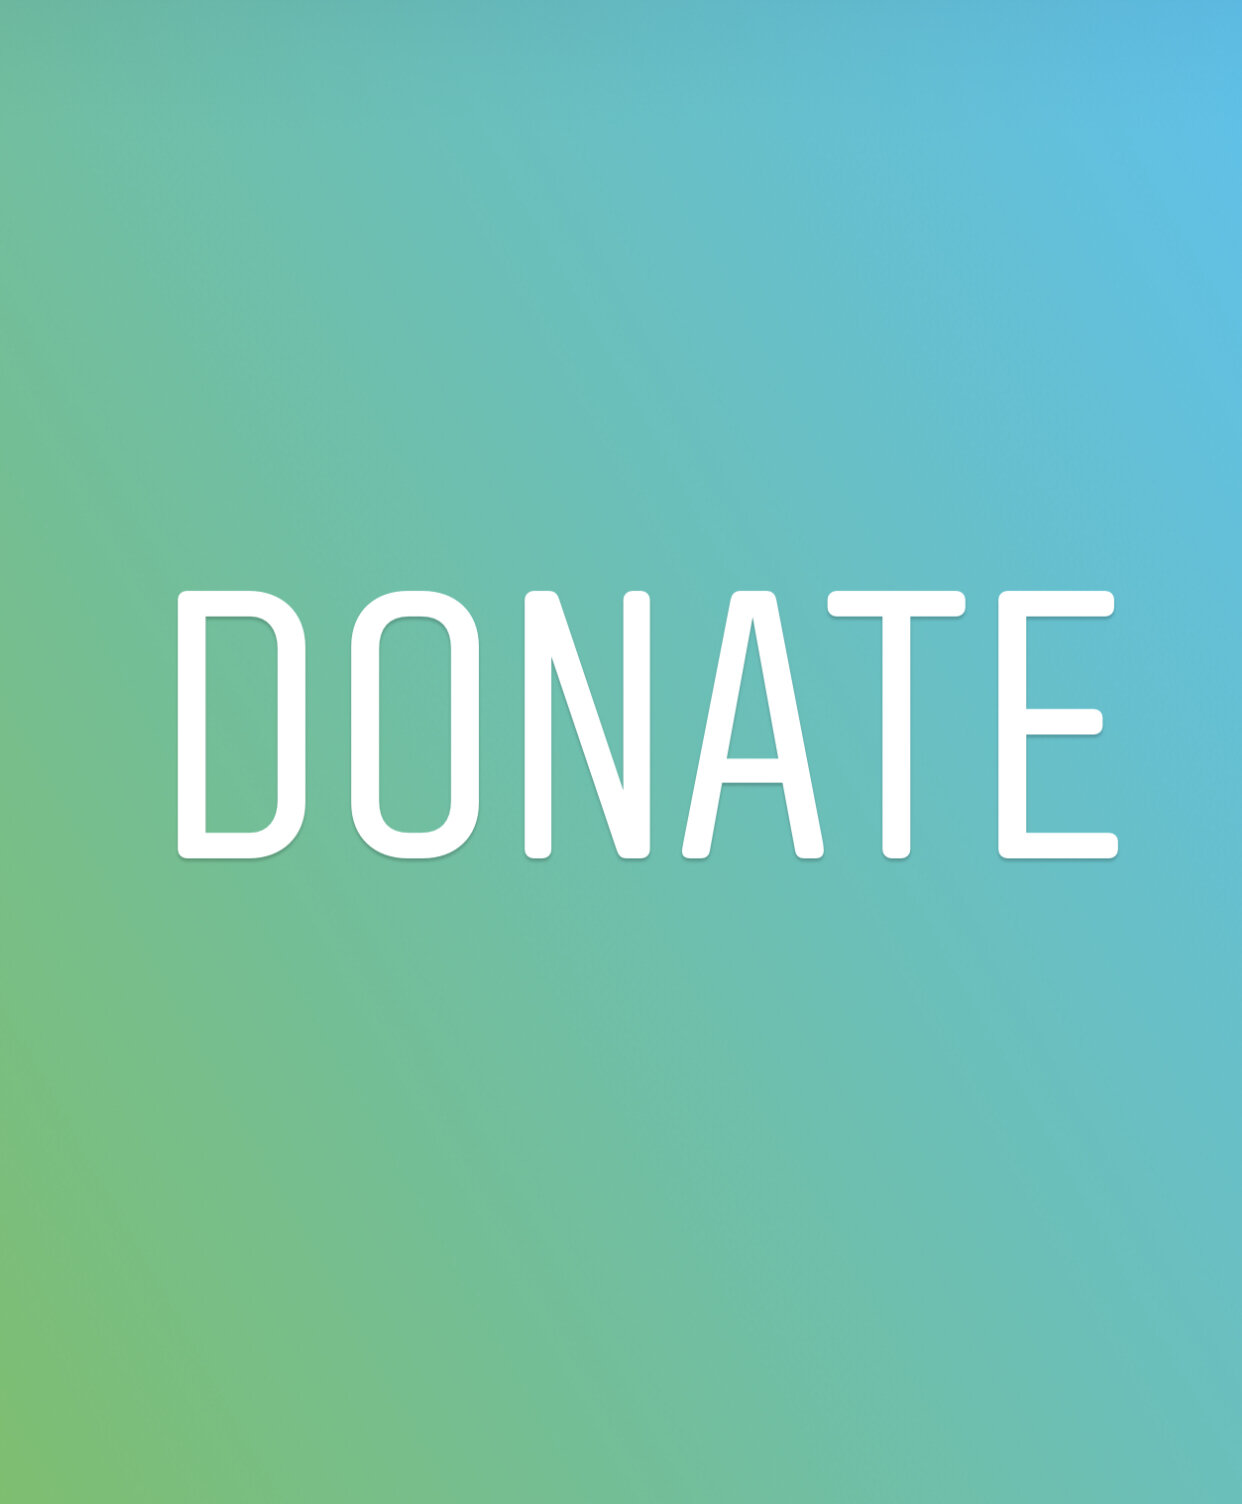 DONATE TO SUPPORT FAMILIES IMPACTED BY TROPICAL STORM IMELDA